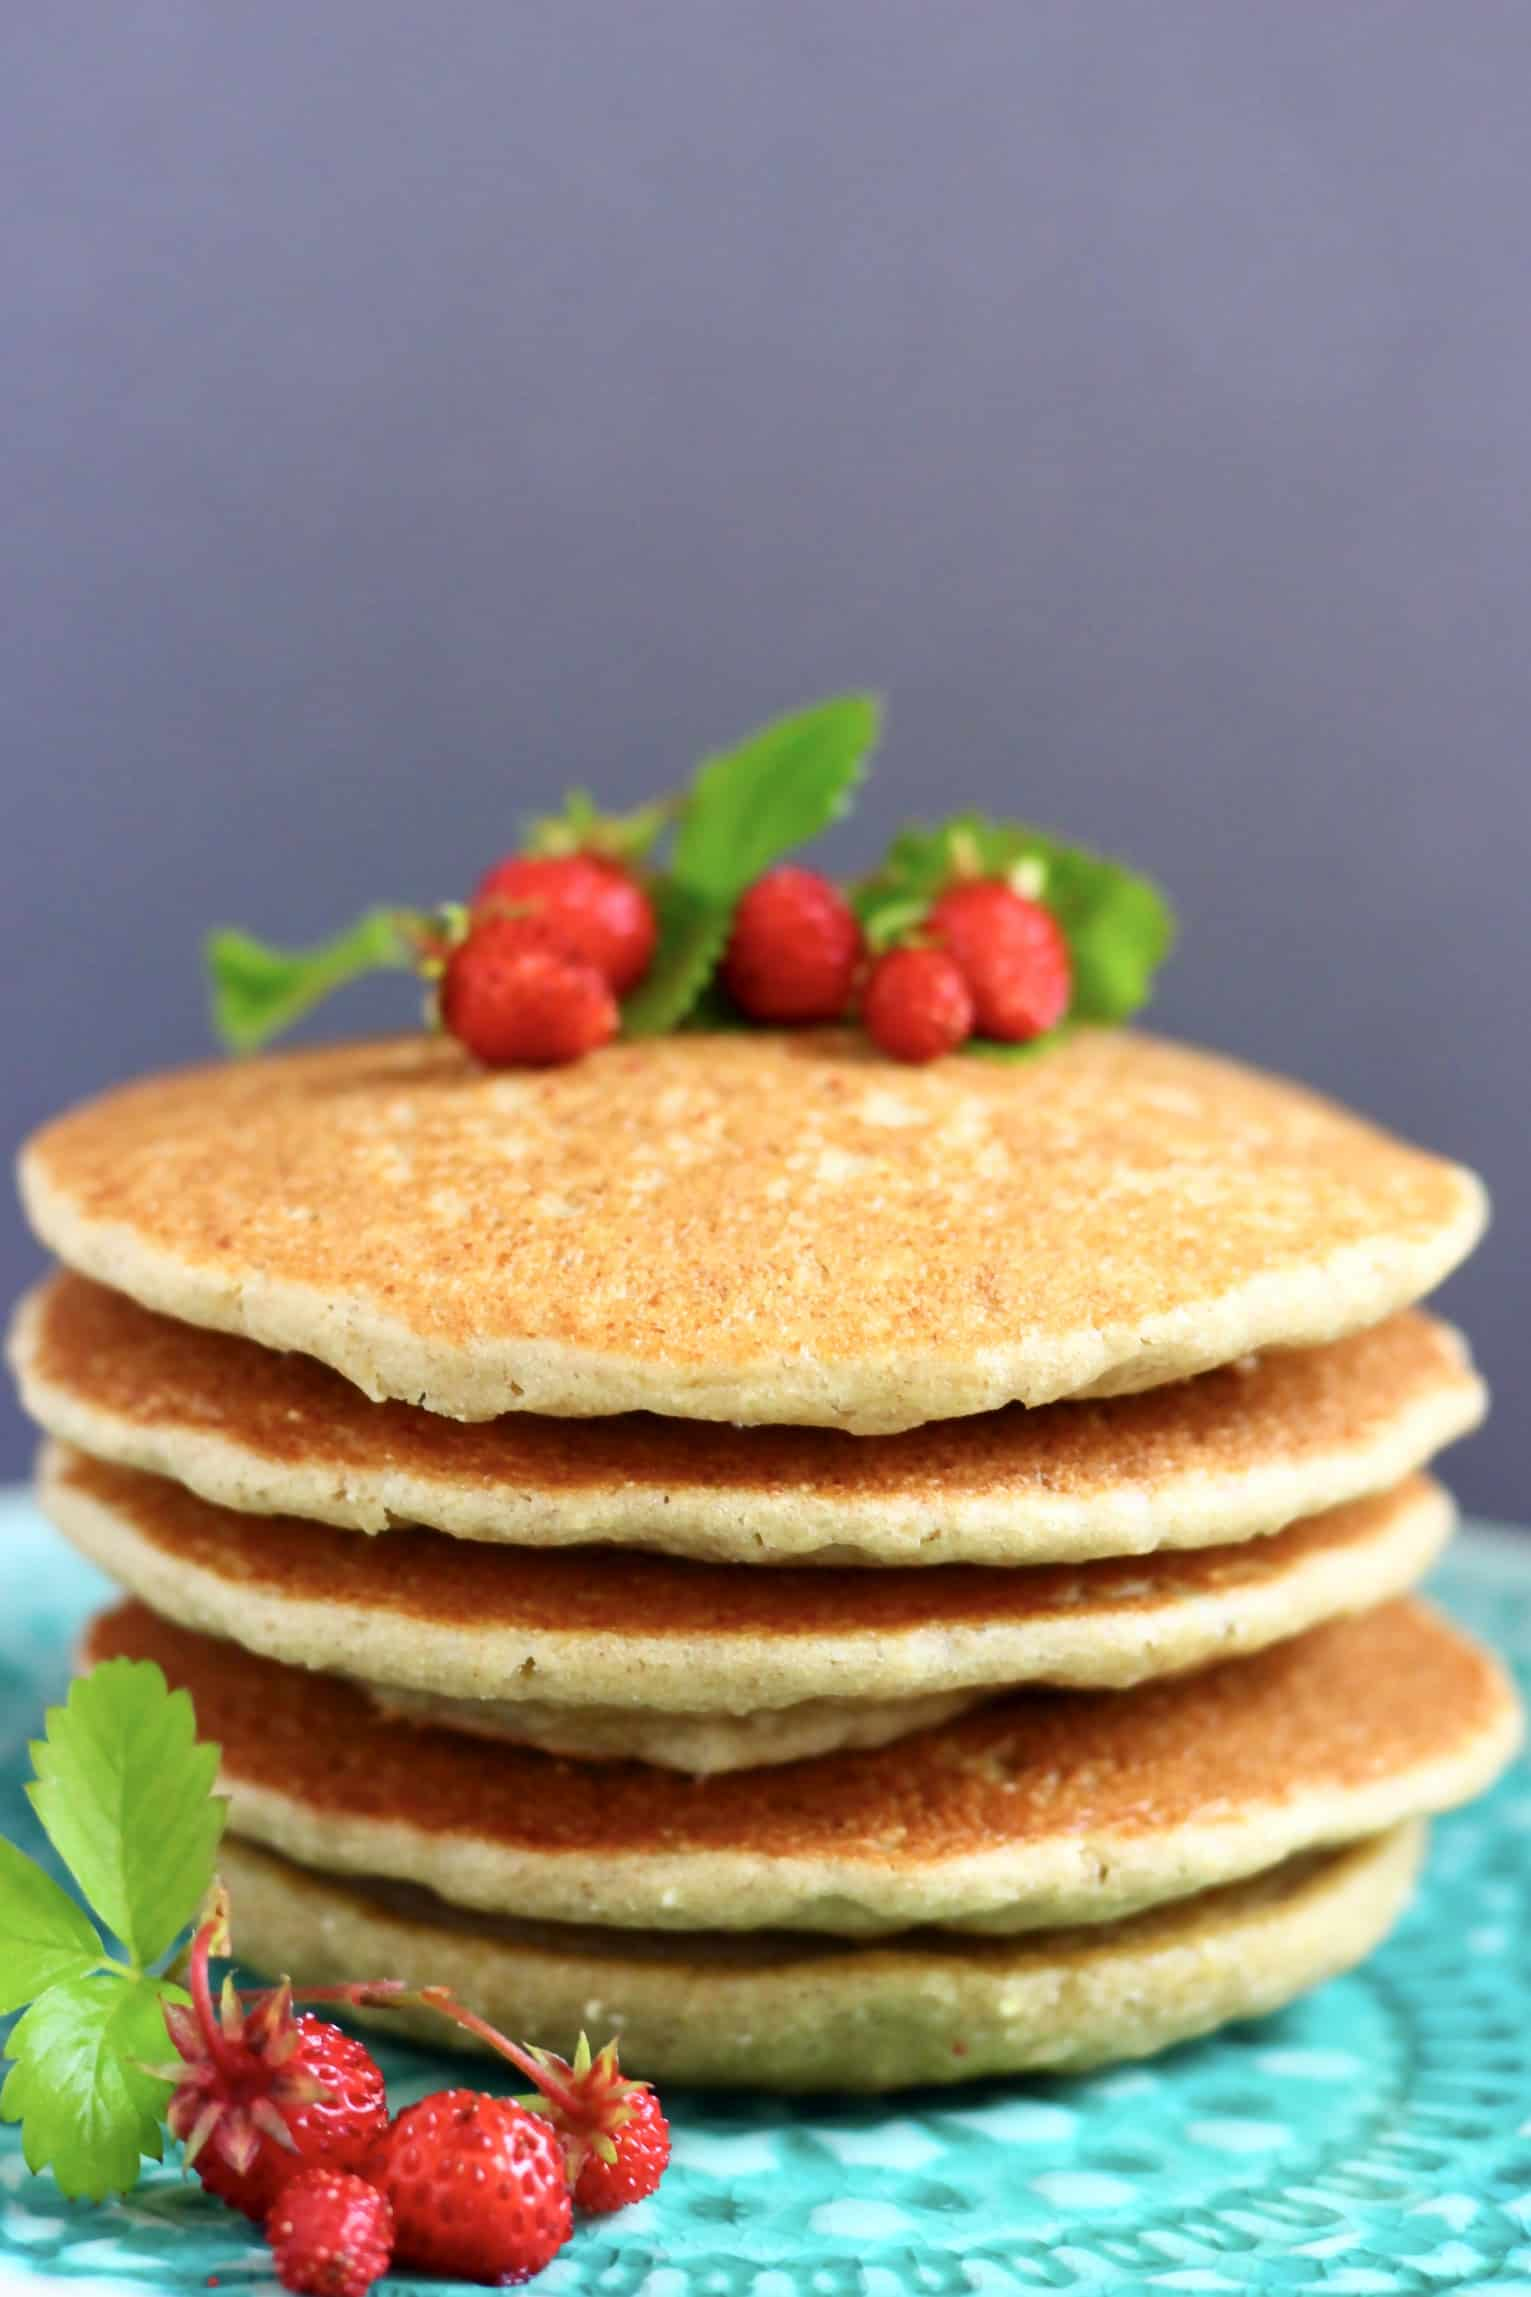 A stack of five quinoa pancakes topped with wild strawberries on a plate